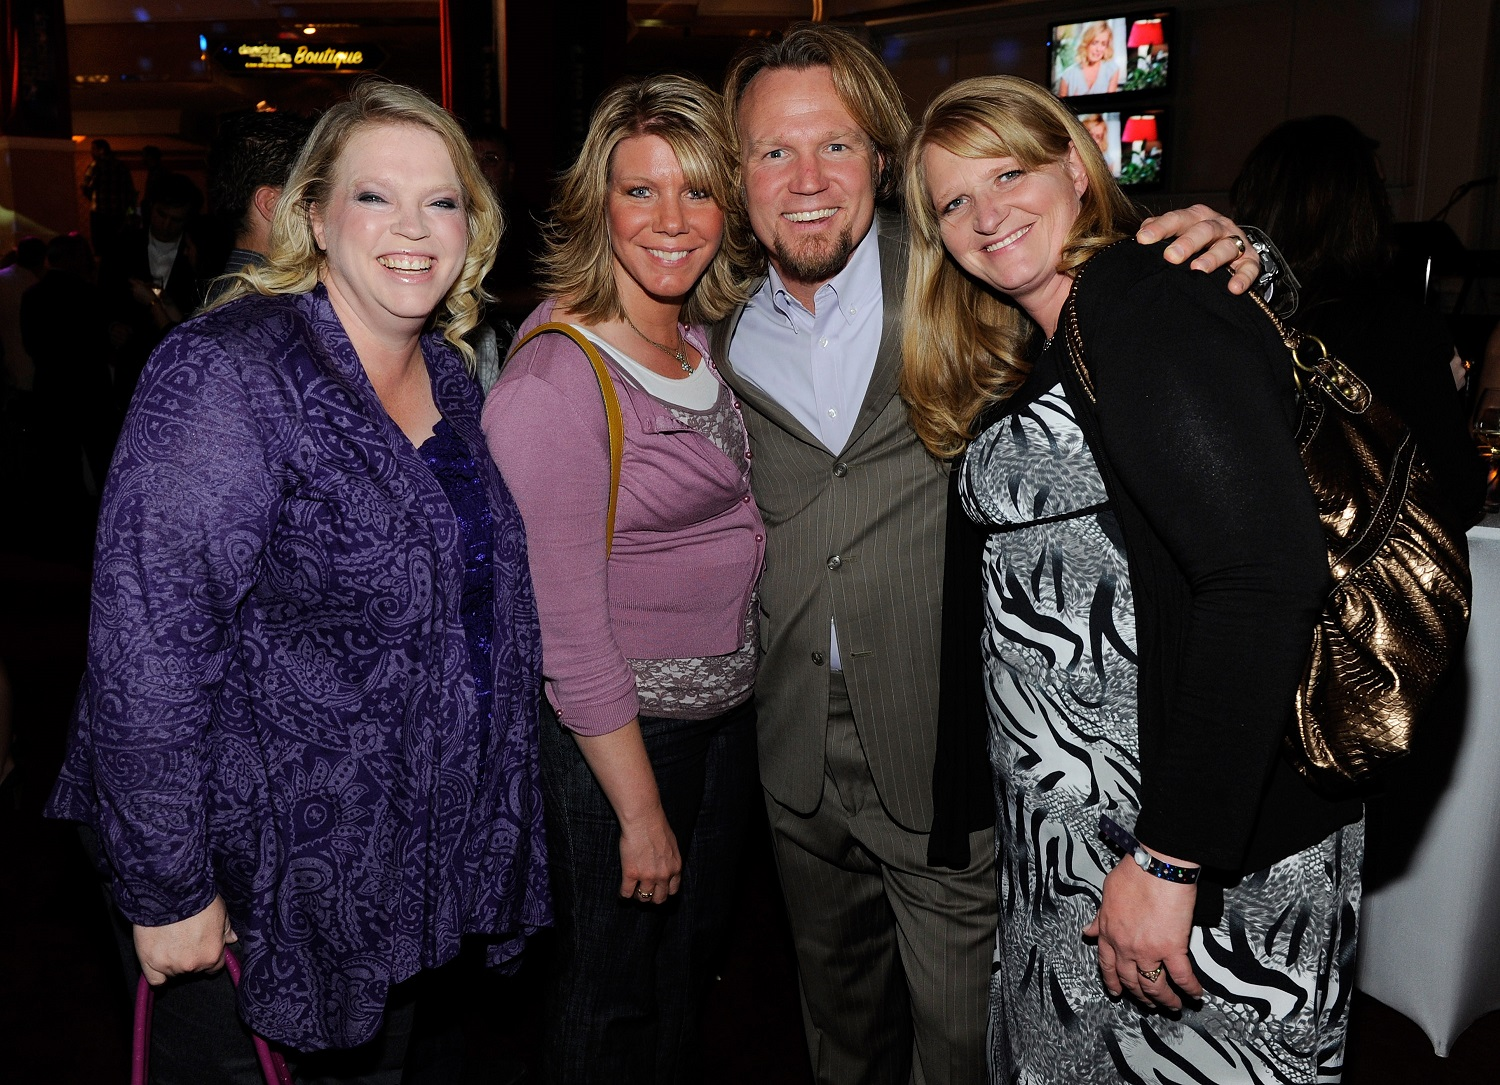 Janelle Brown, Meri Brown, Kody Brown, and Christine Brown from Sister Wives